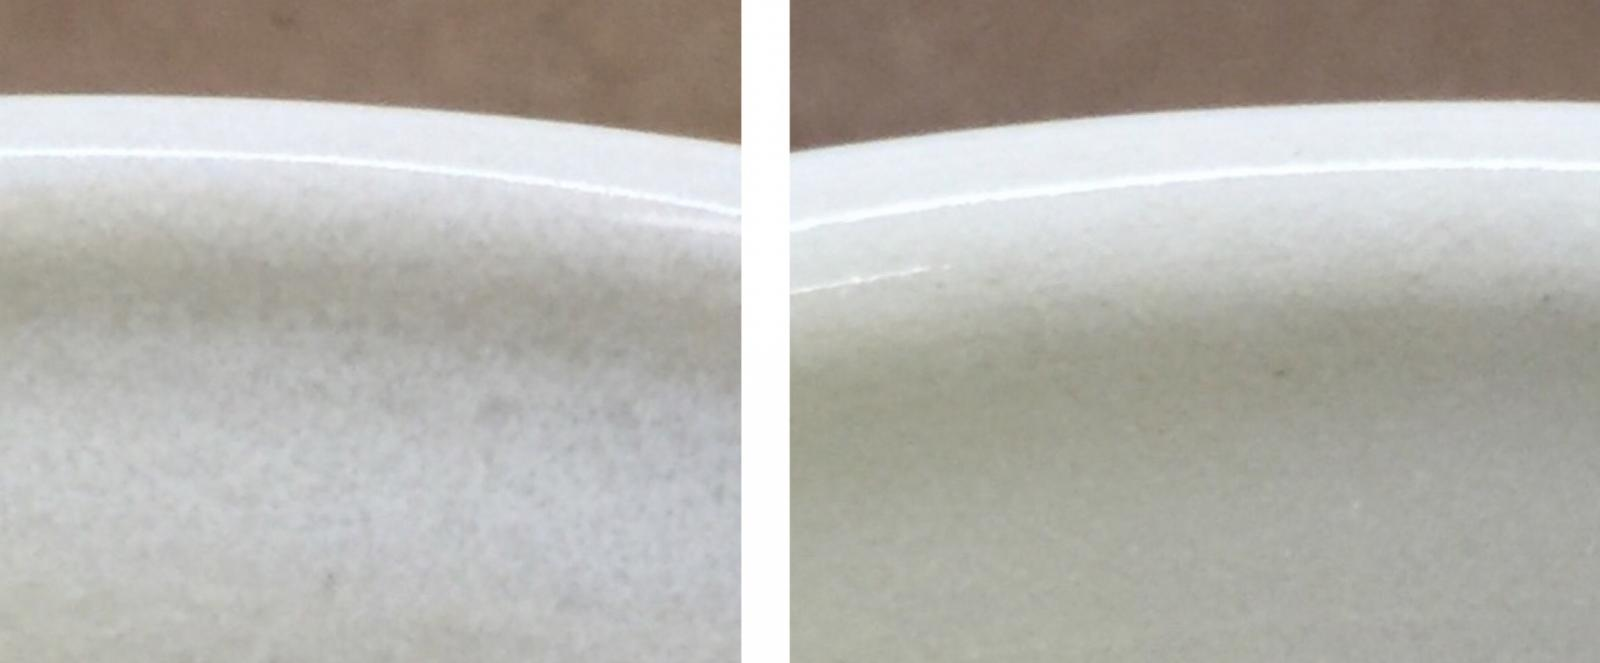 Slow cooling vs. fast cooling on a cone 6 transparent glaze